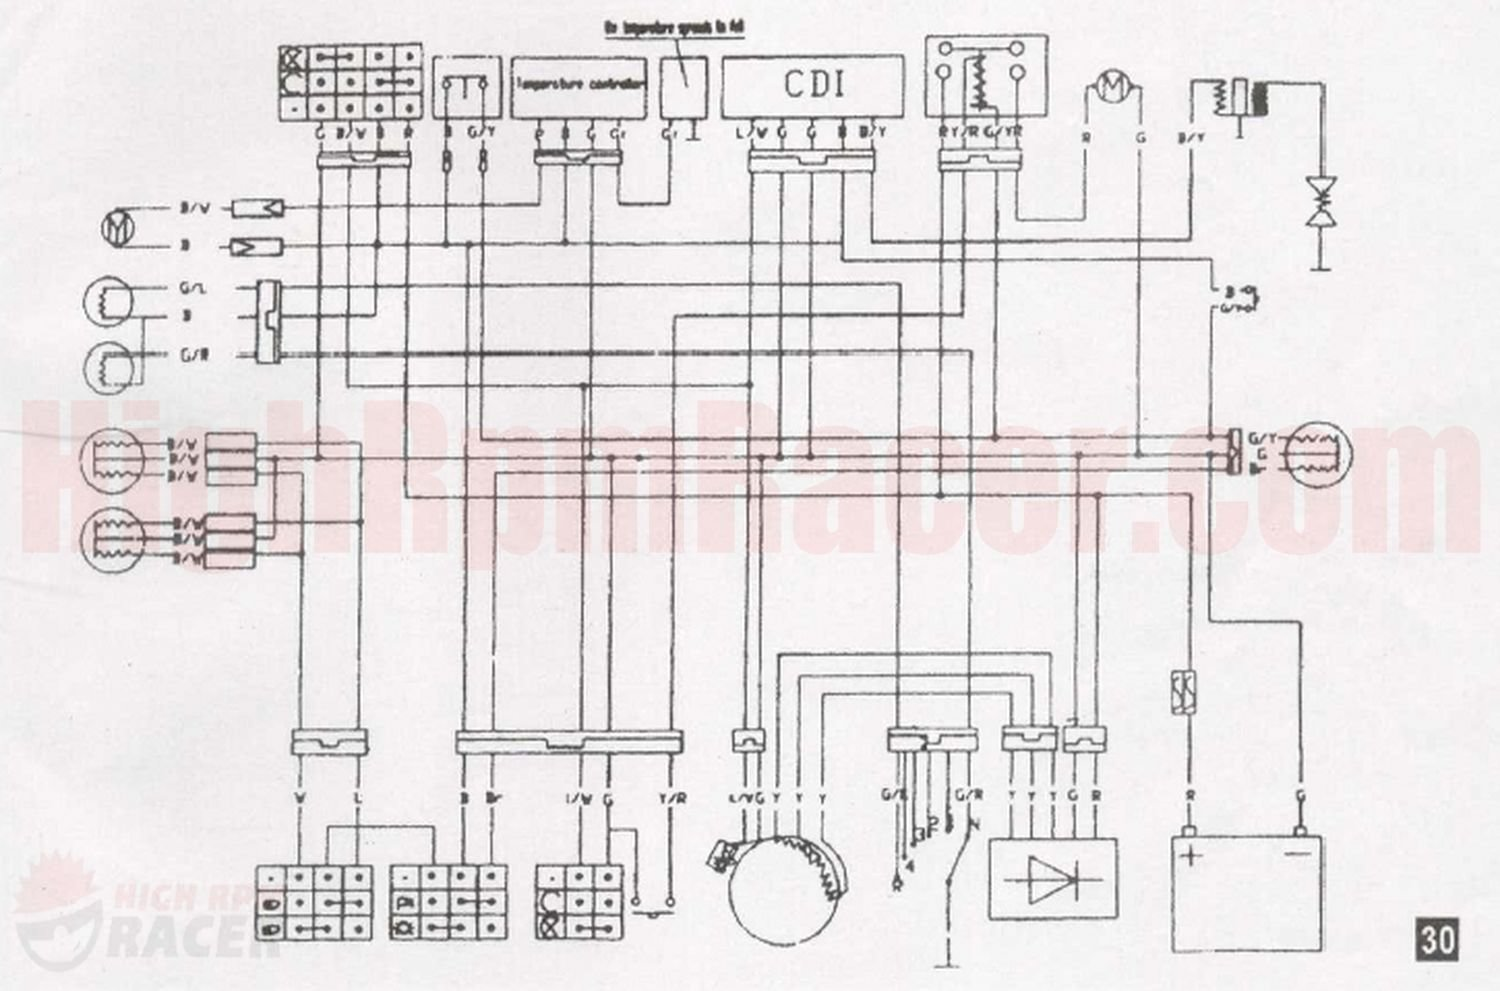 chinese atv ignition wiring diagram chinese wiring diagrams roketa110 wd chinese atv ignition wiring diagram roketa110 wd